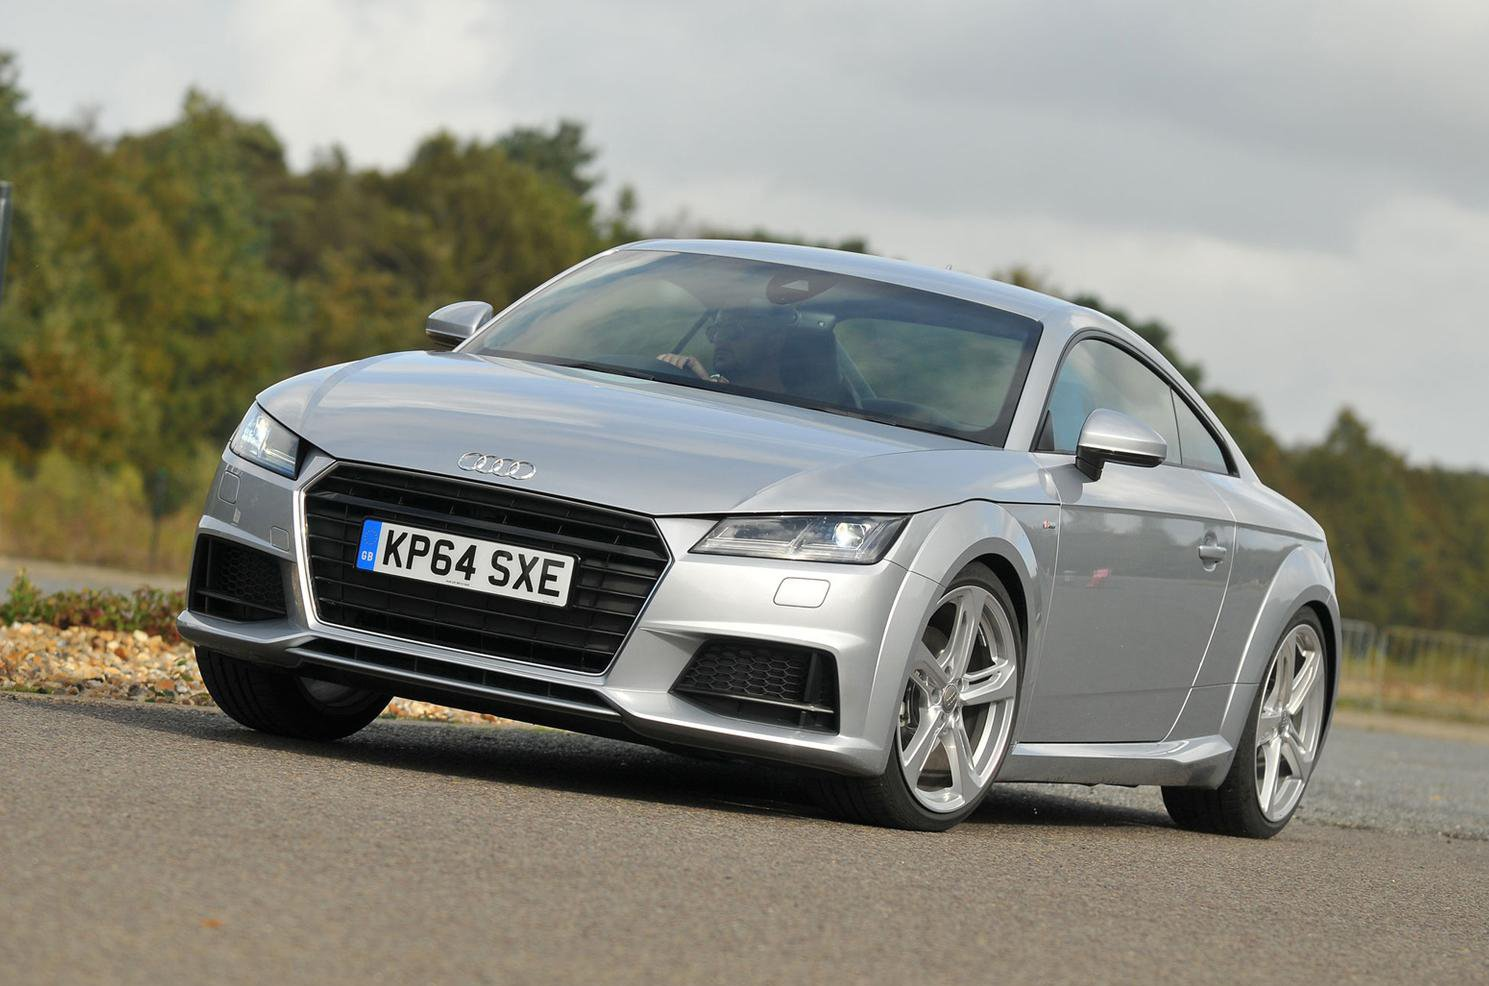 Used Audi TT Coupe front